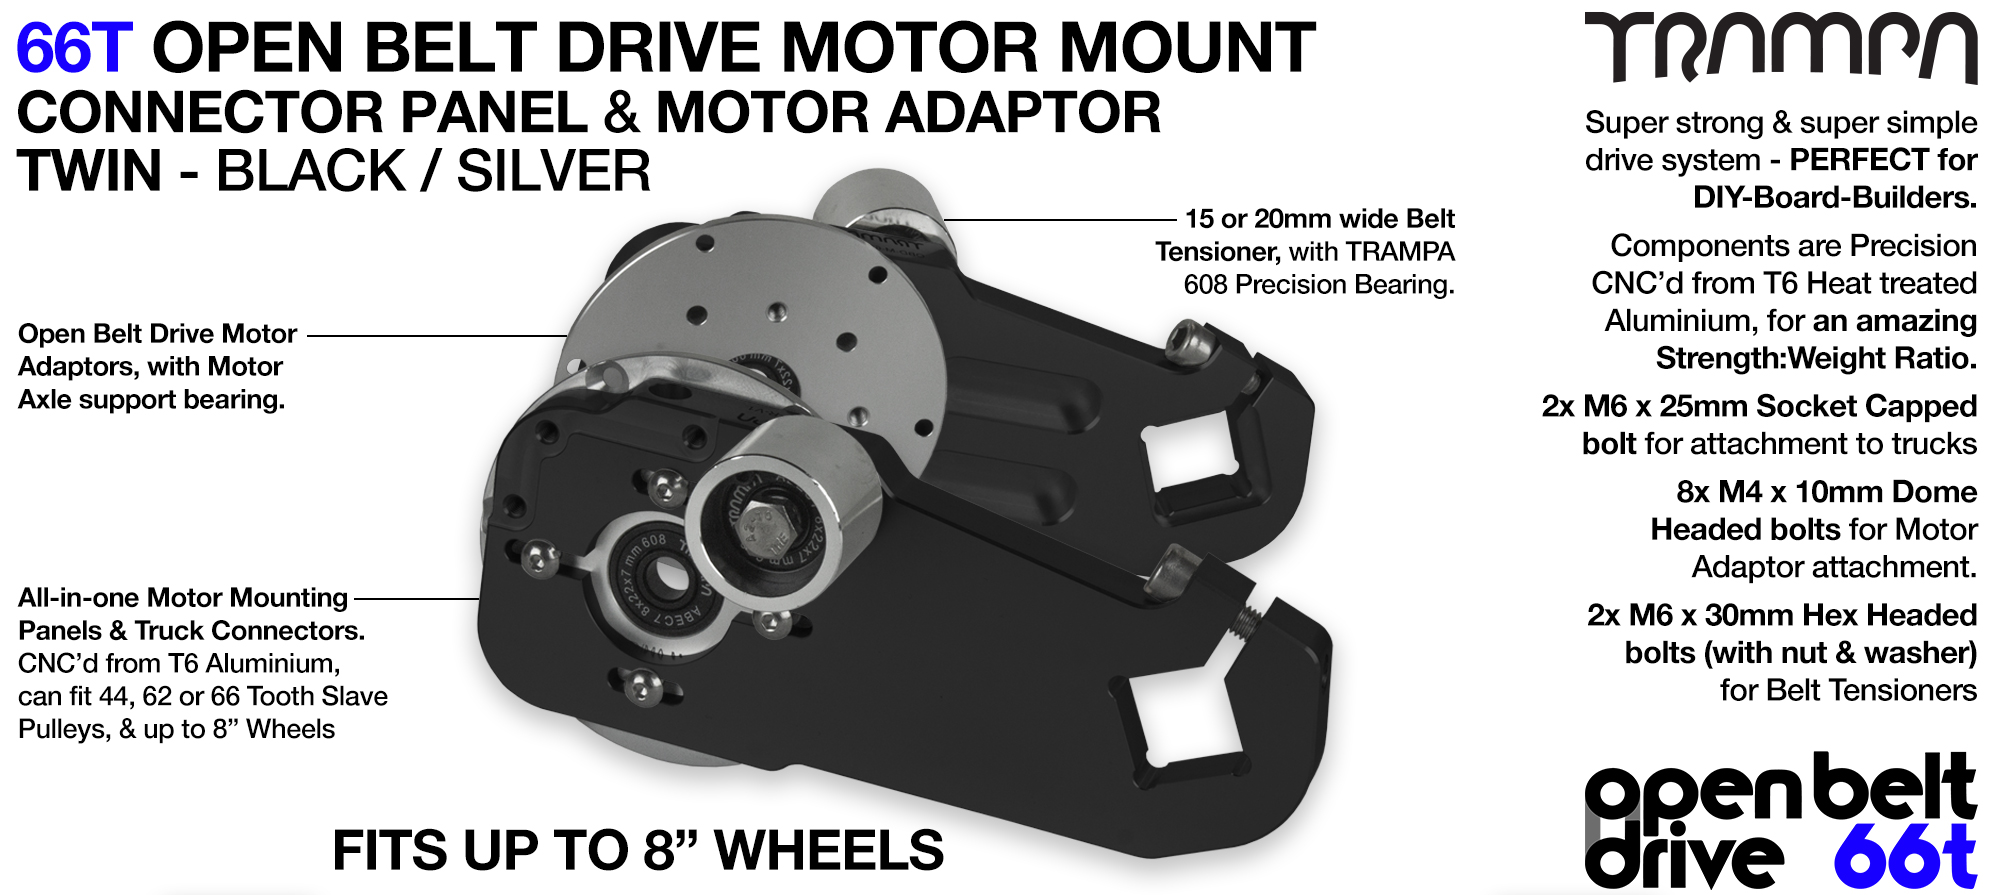 66T OPEN BELT DRIVE Motor Mount & Motor Adaptor - TWIN BLACK